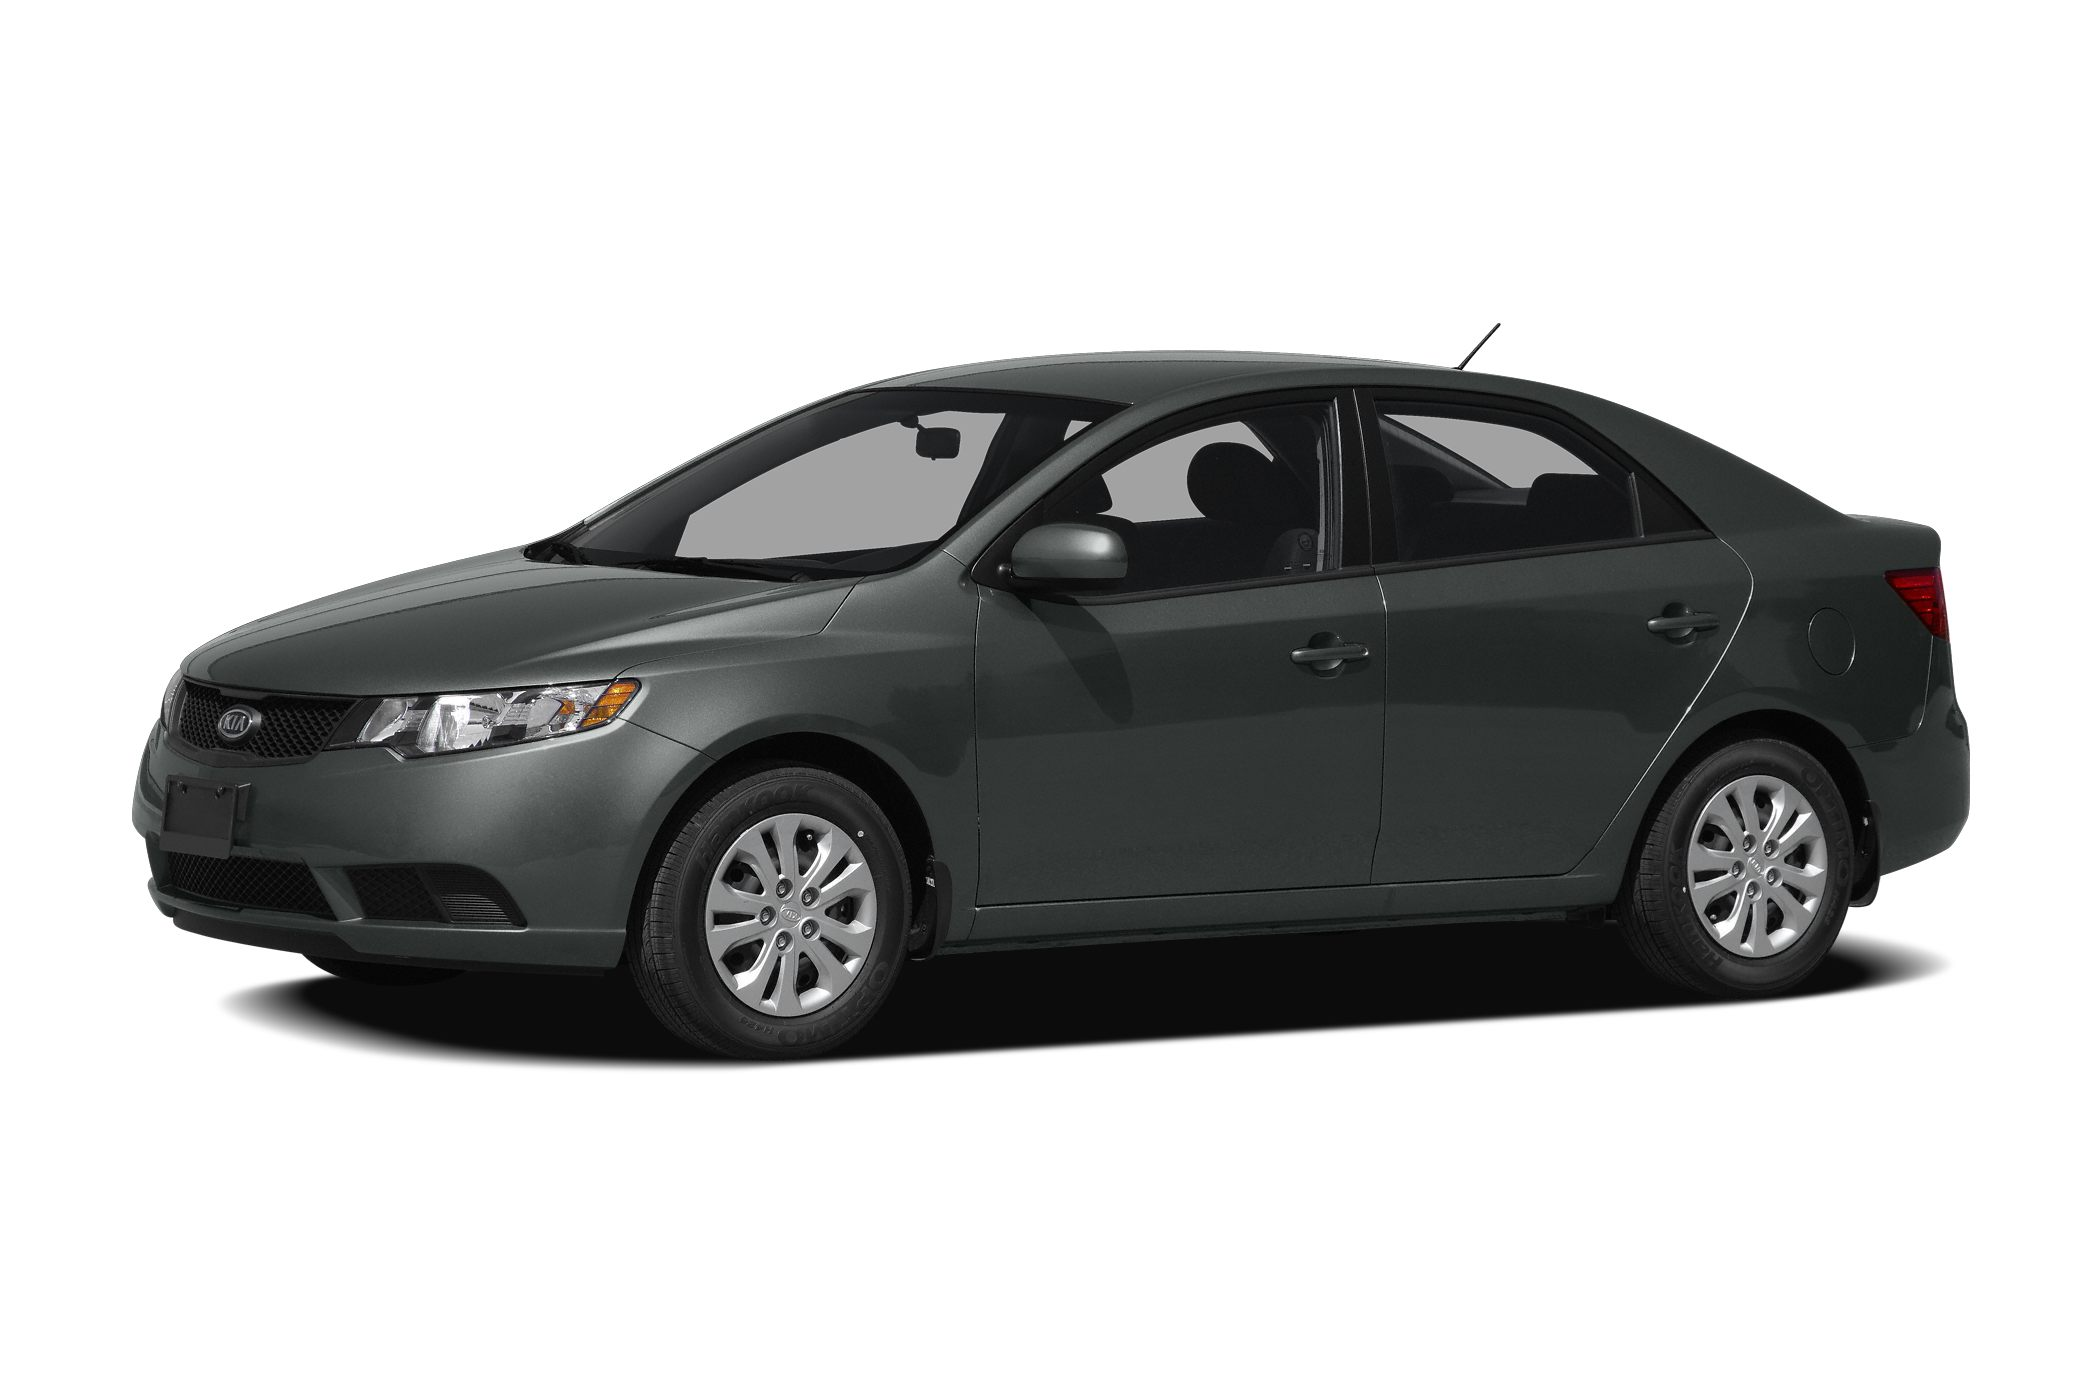 CAC00KIC111A0101 Interesting Info About Kia forte Ex 2010 with Interesting Images Cars Review